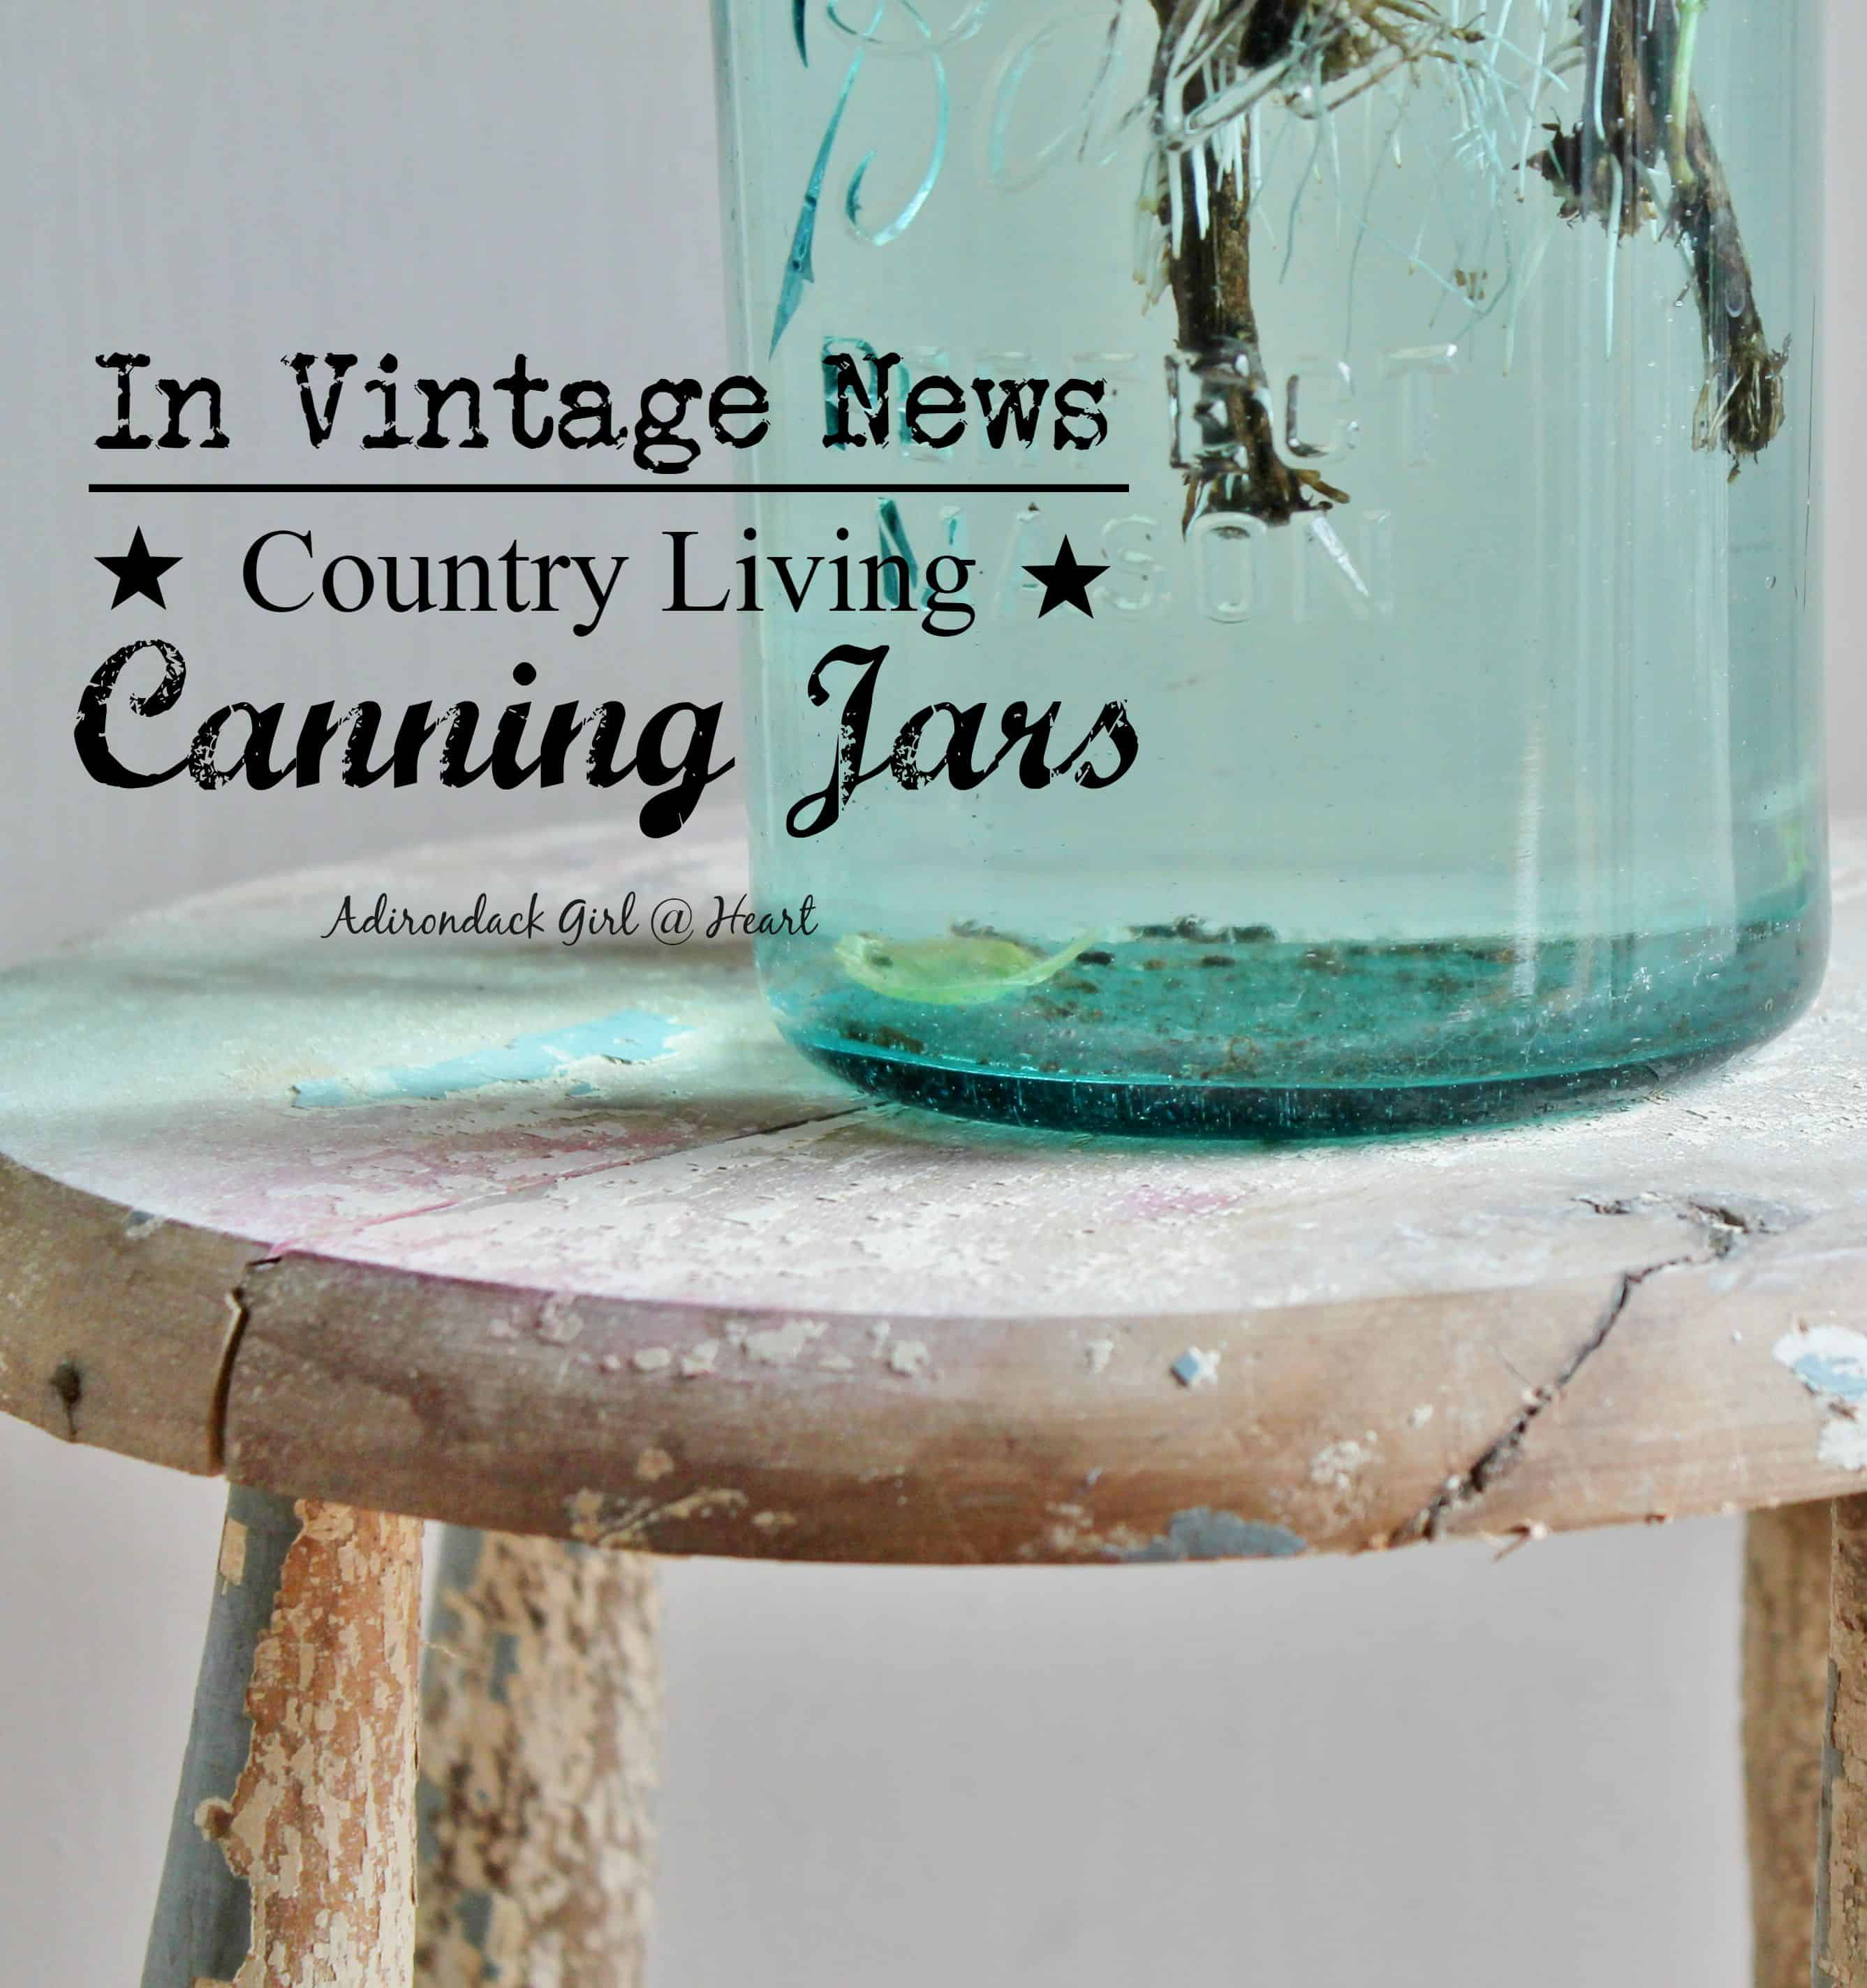 Canning jar article